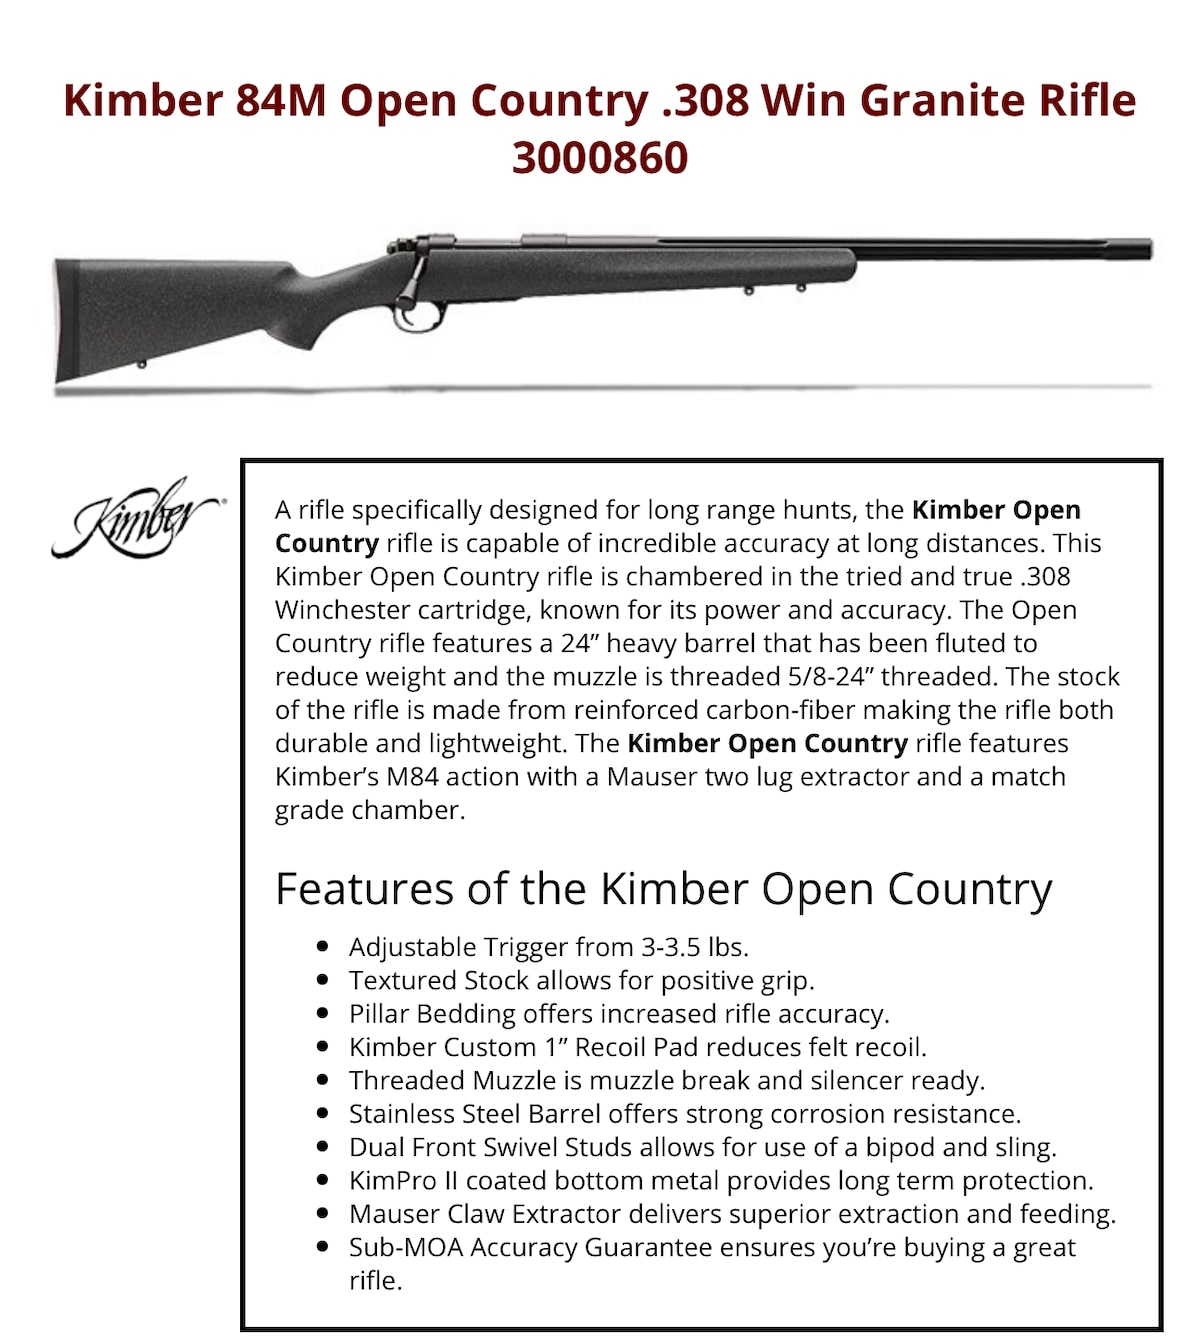 KIMBER 84M open Country 308 Win Granite